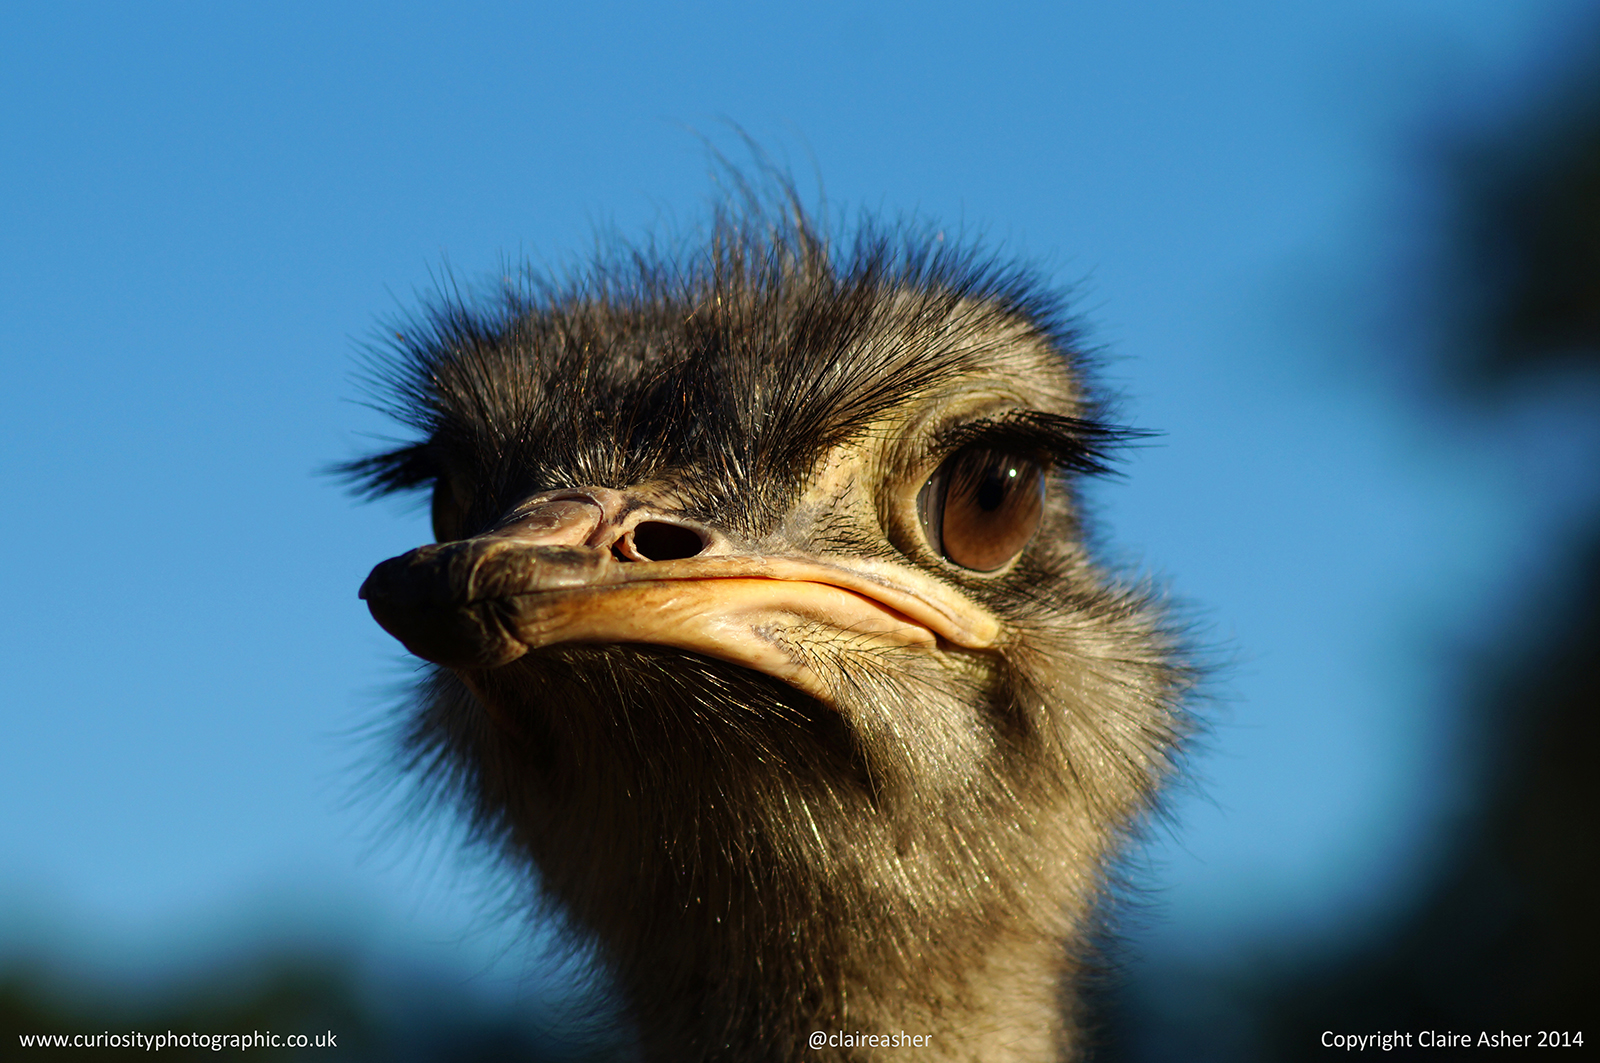 An Ostrich (Struthio camelus) photographed in captivity in New Zealand in 2014.